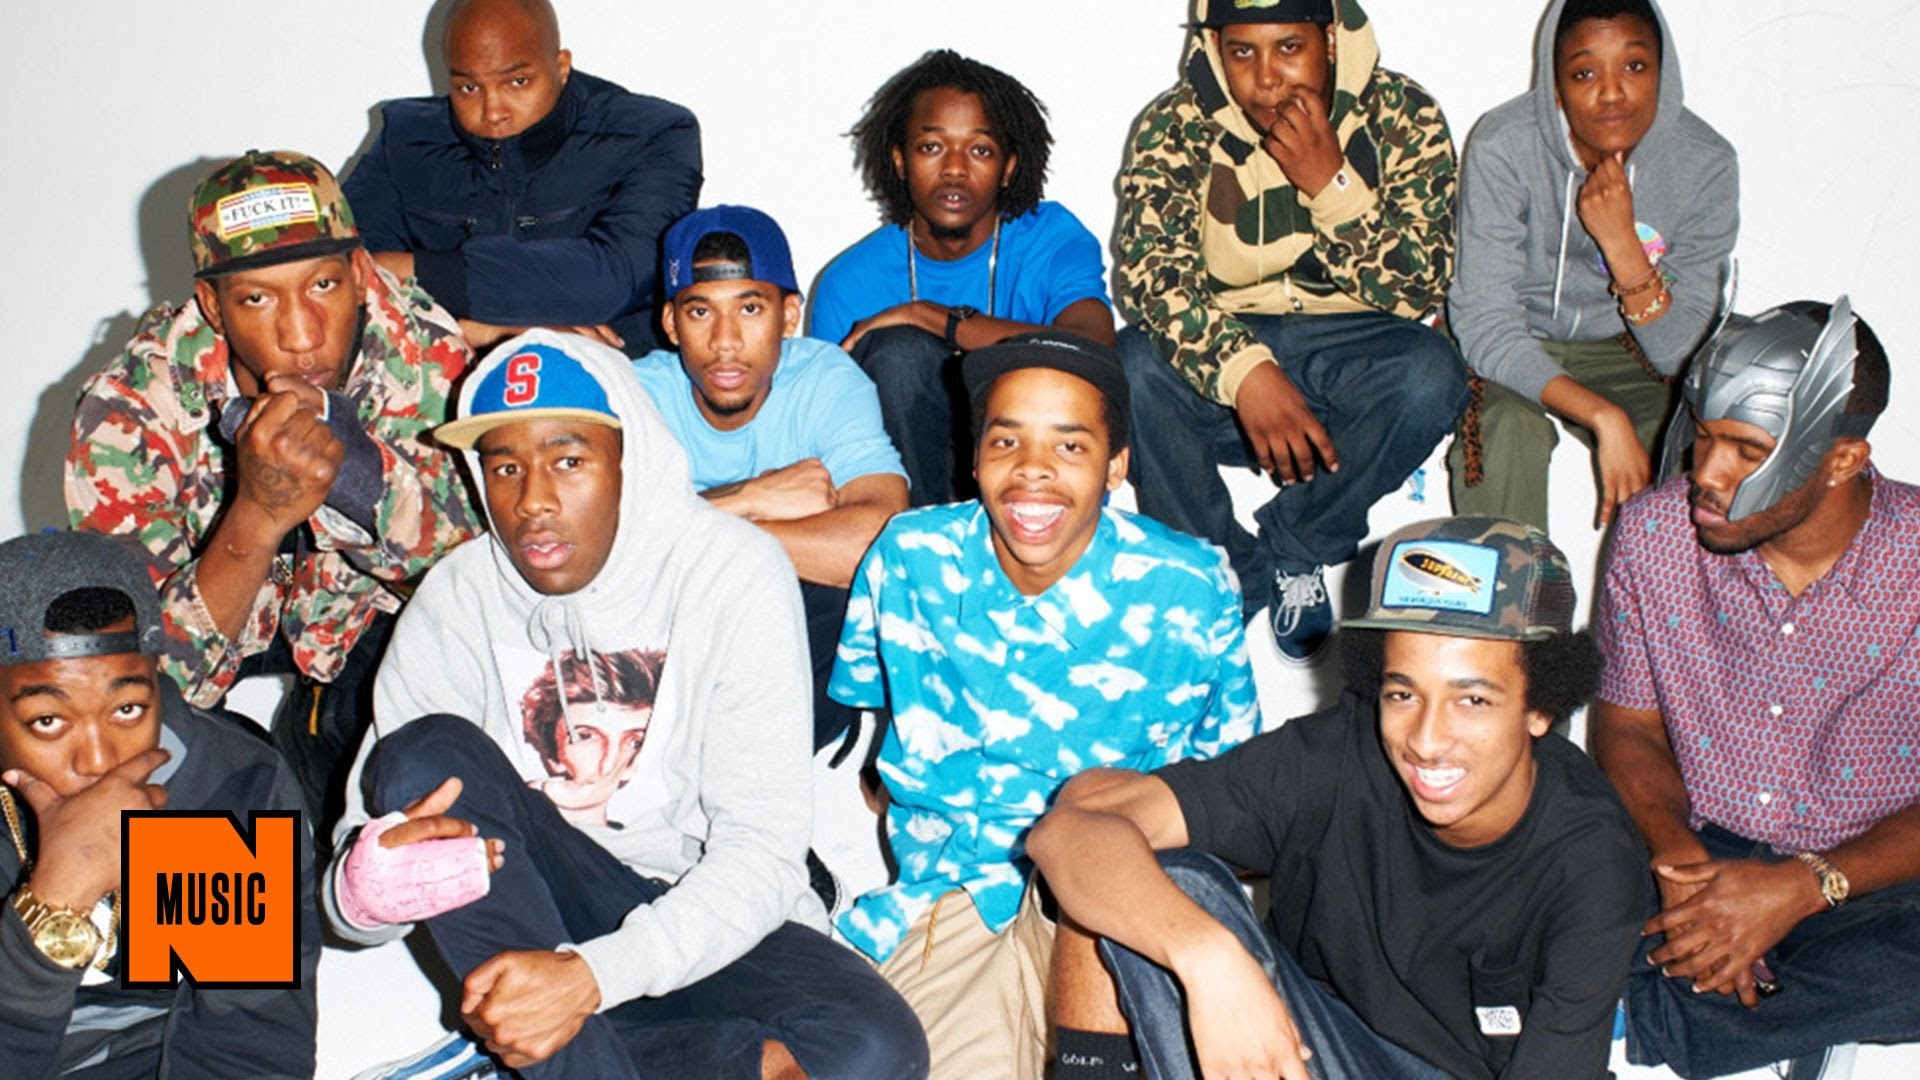 1920x1080 Images of Odd Future |